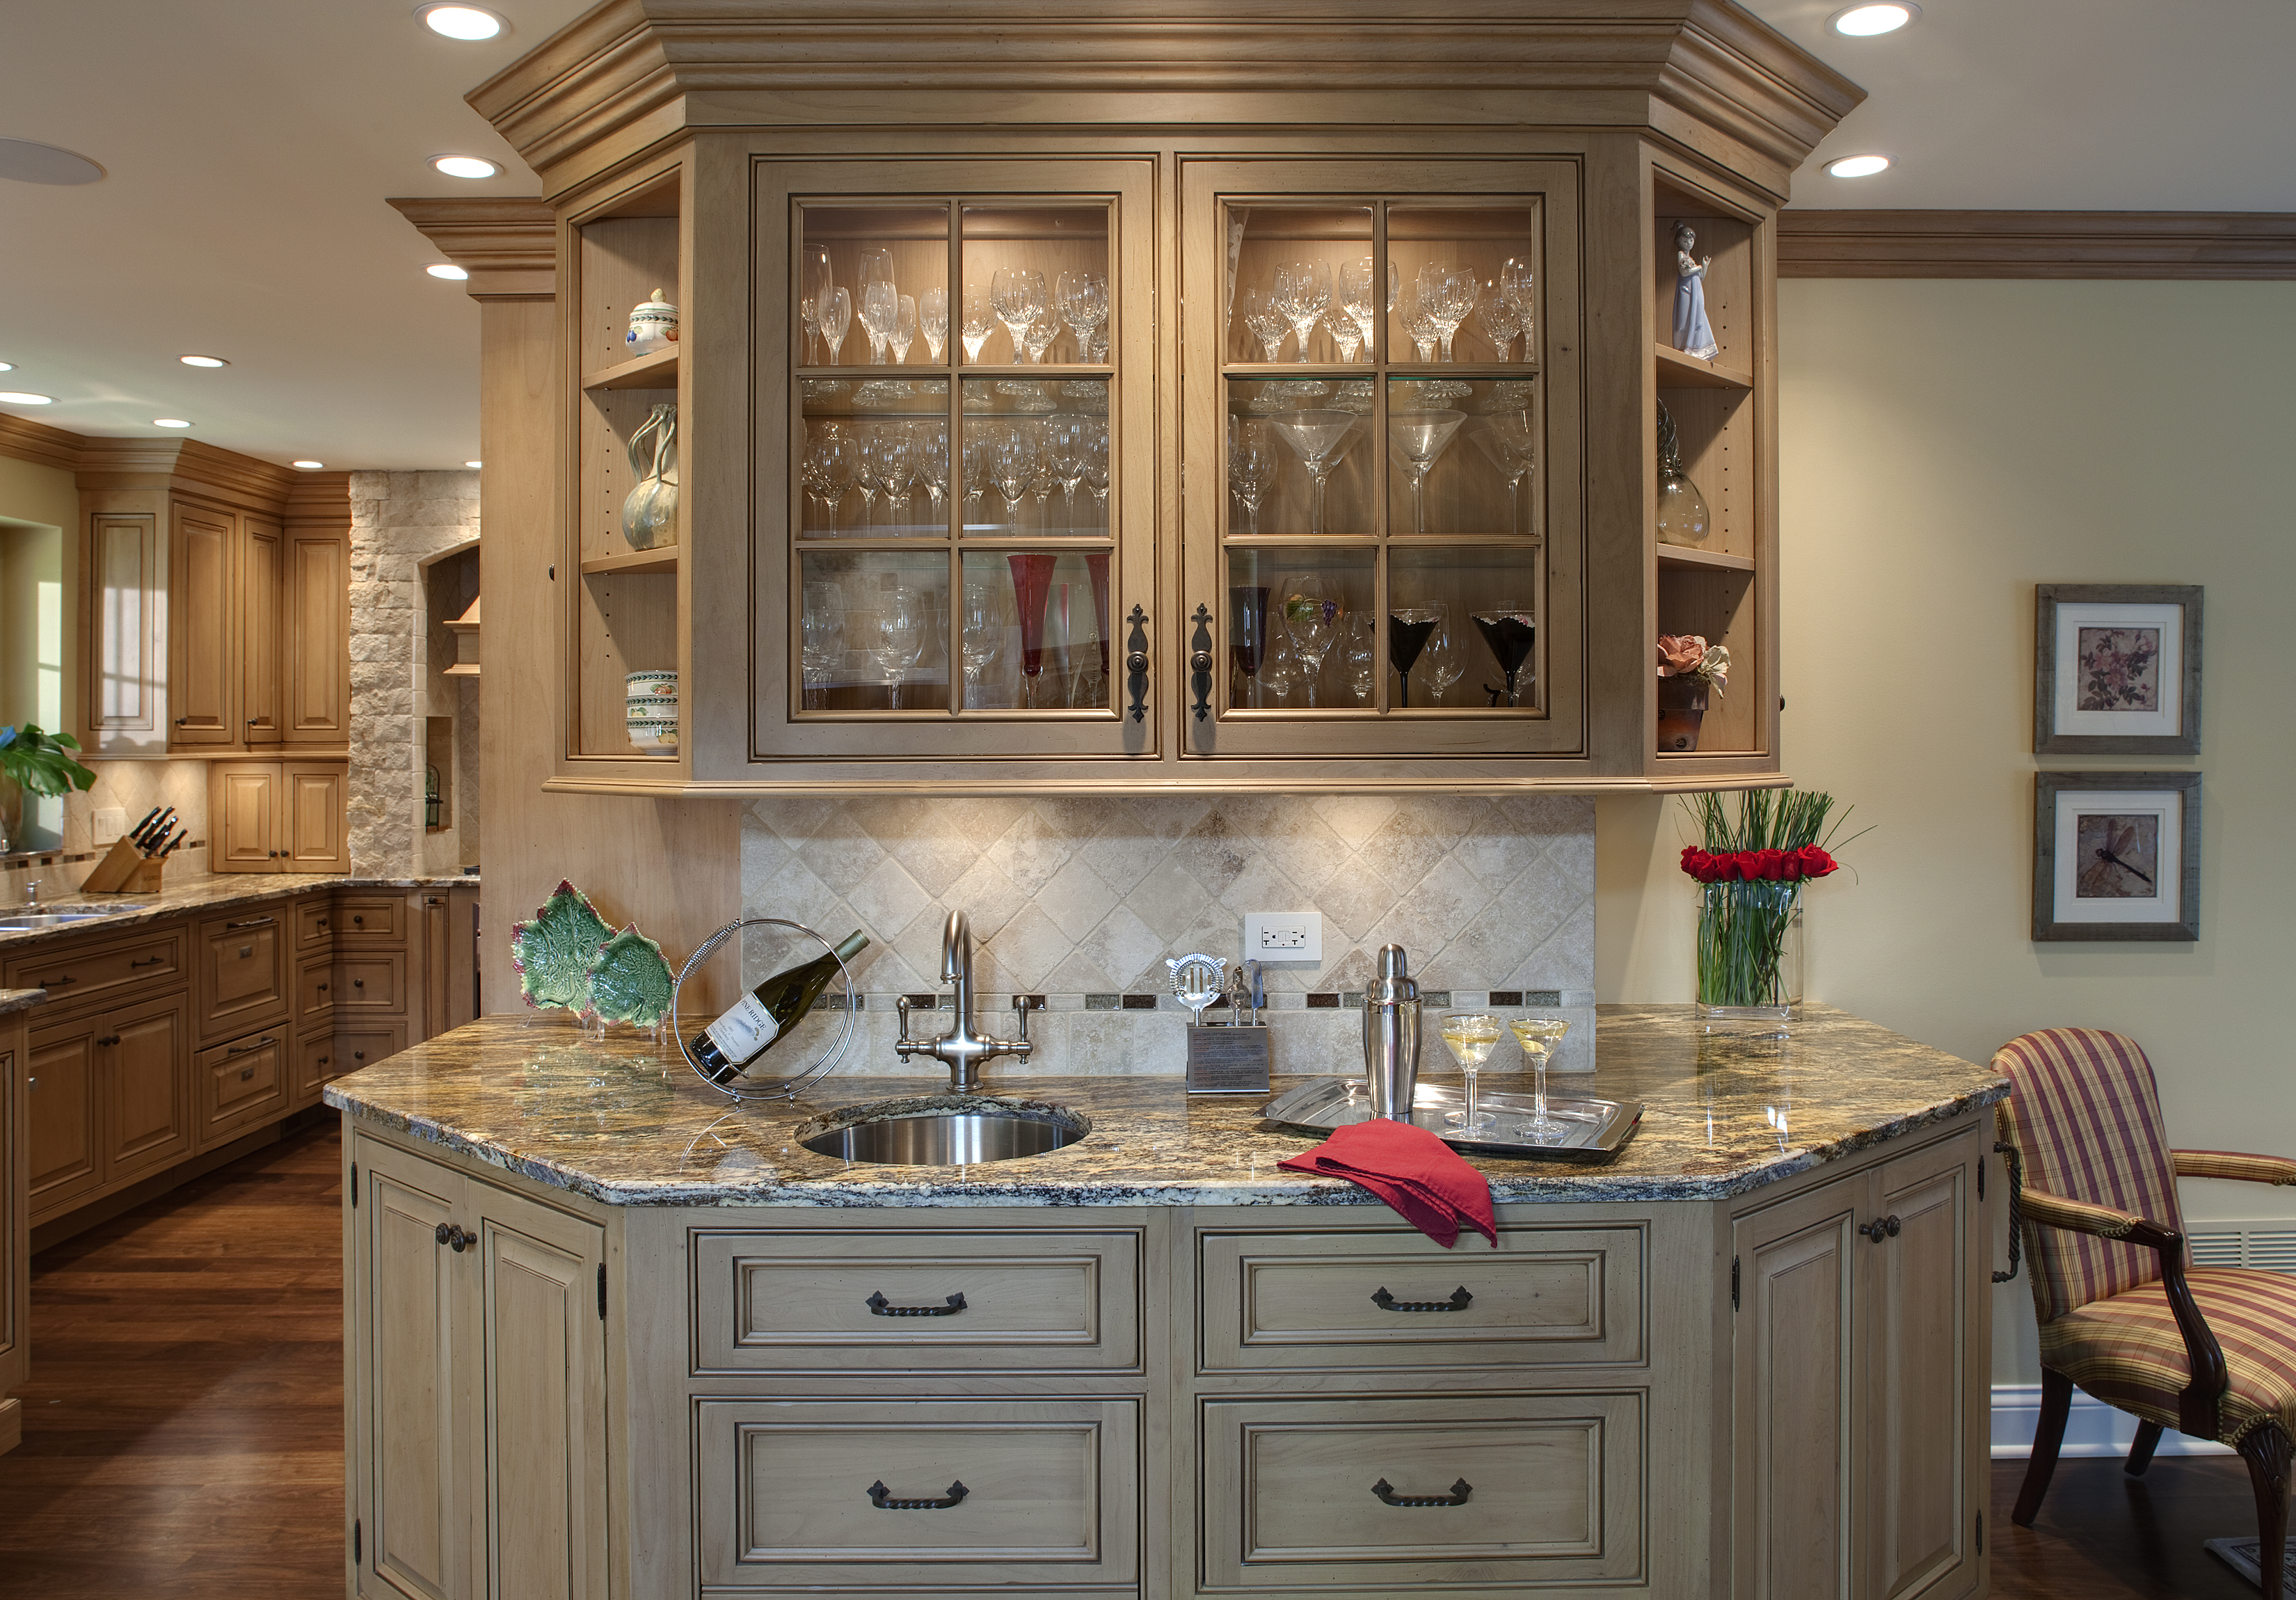 Best Kitchen Gallery: Tuscan Style Kitchen Cabi With White And Wooden Tone  Of Tuscan Kitchen